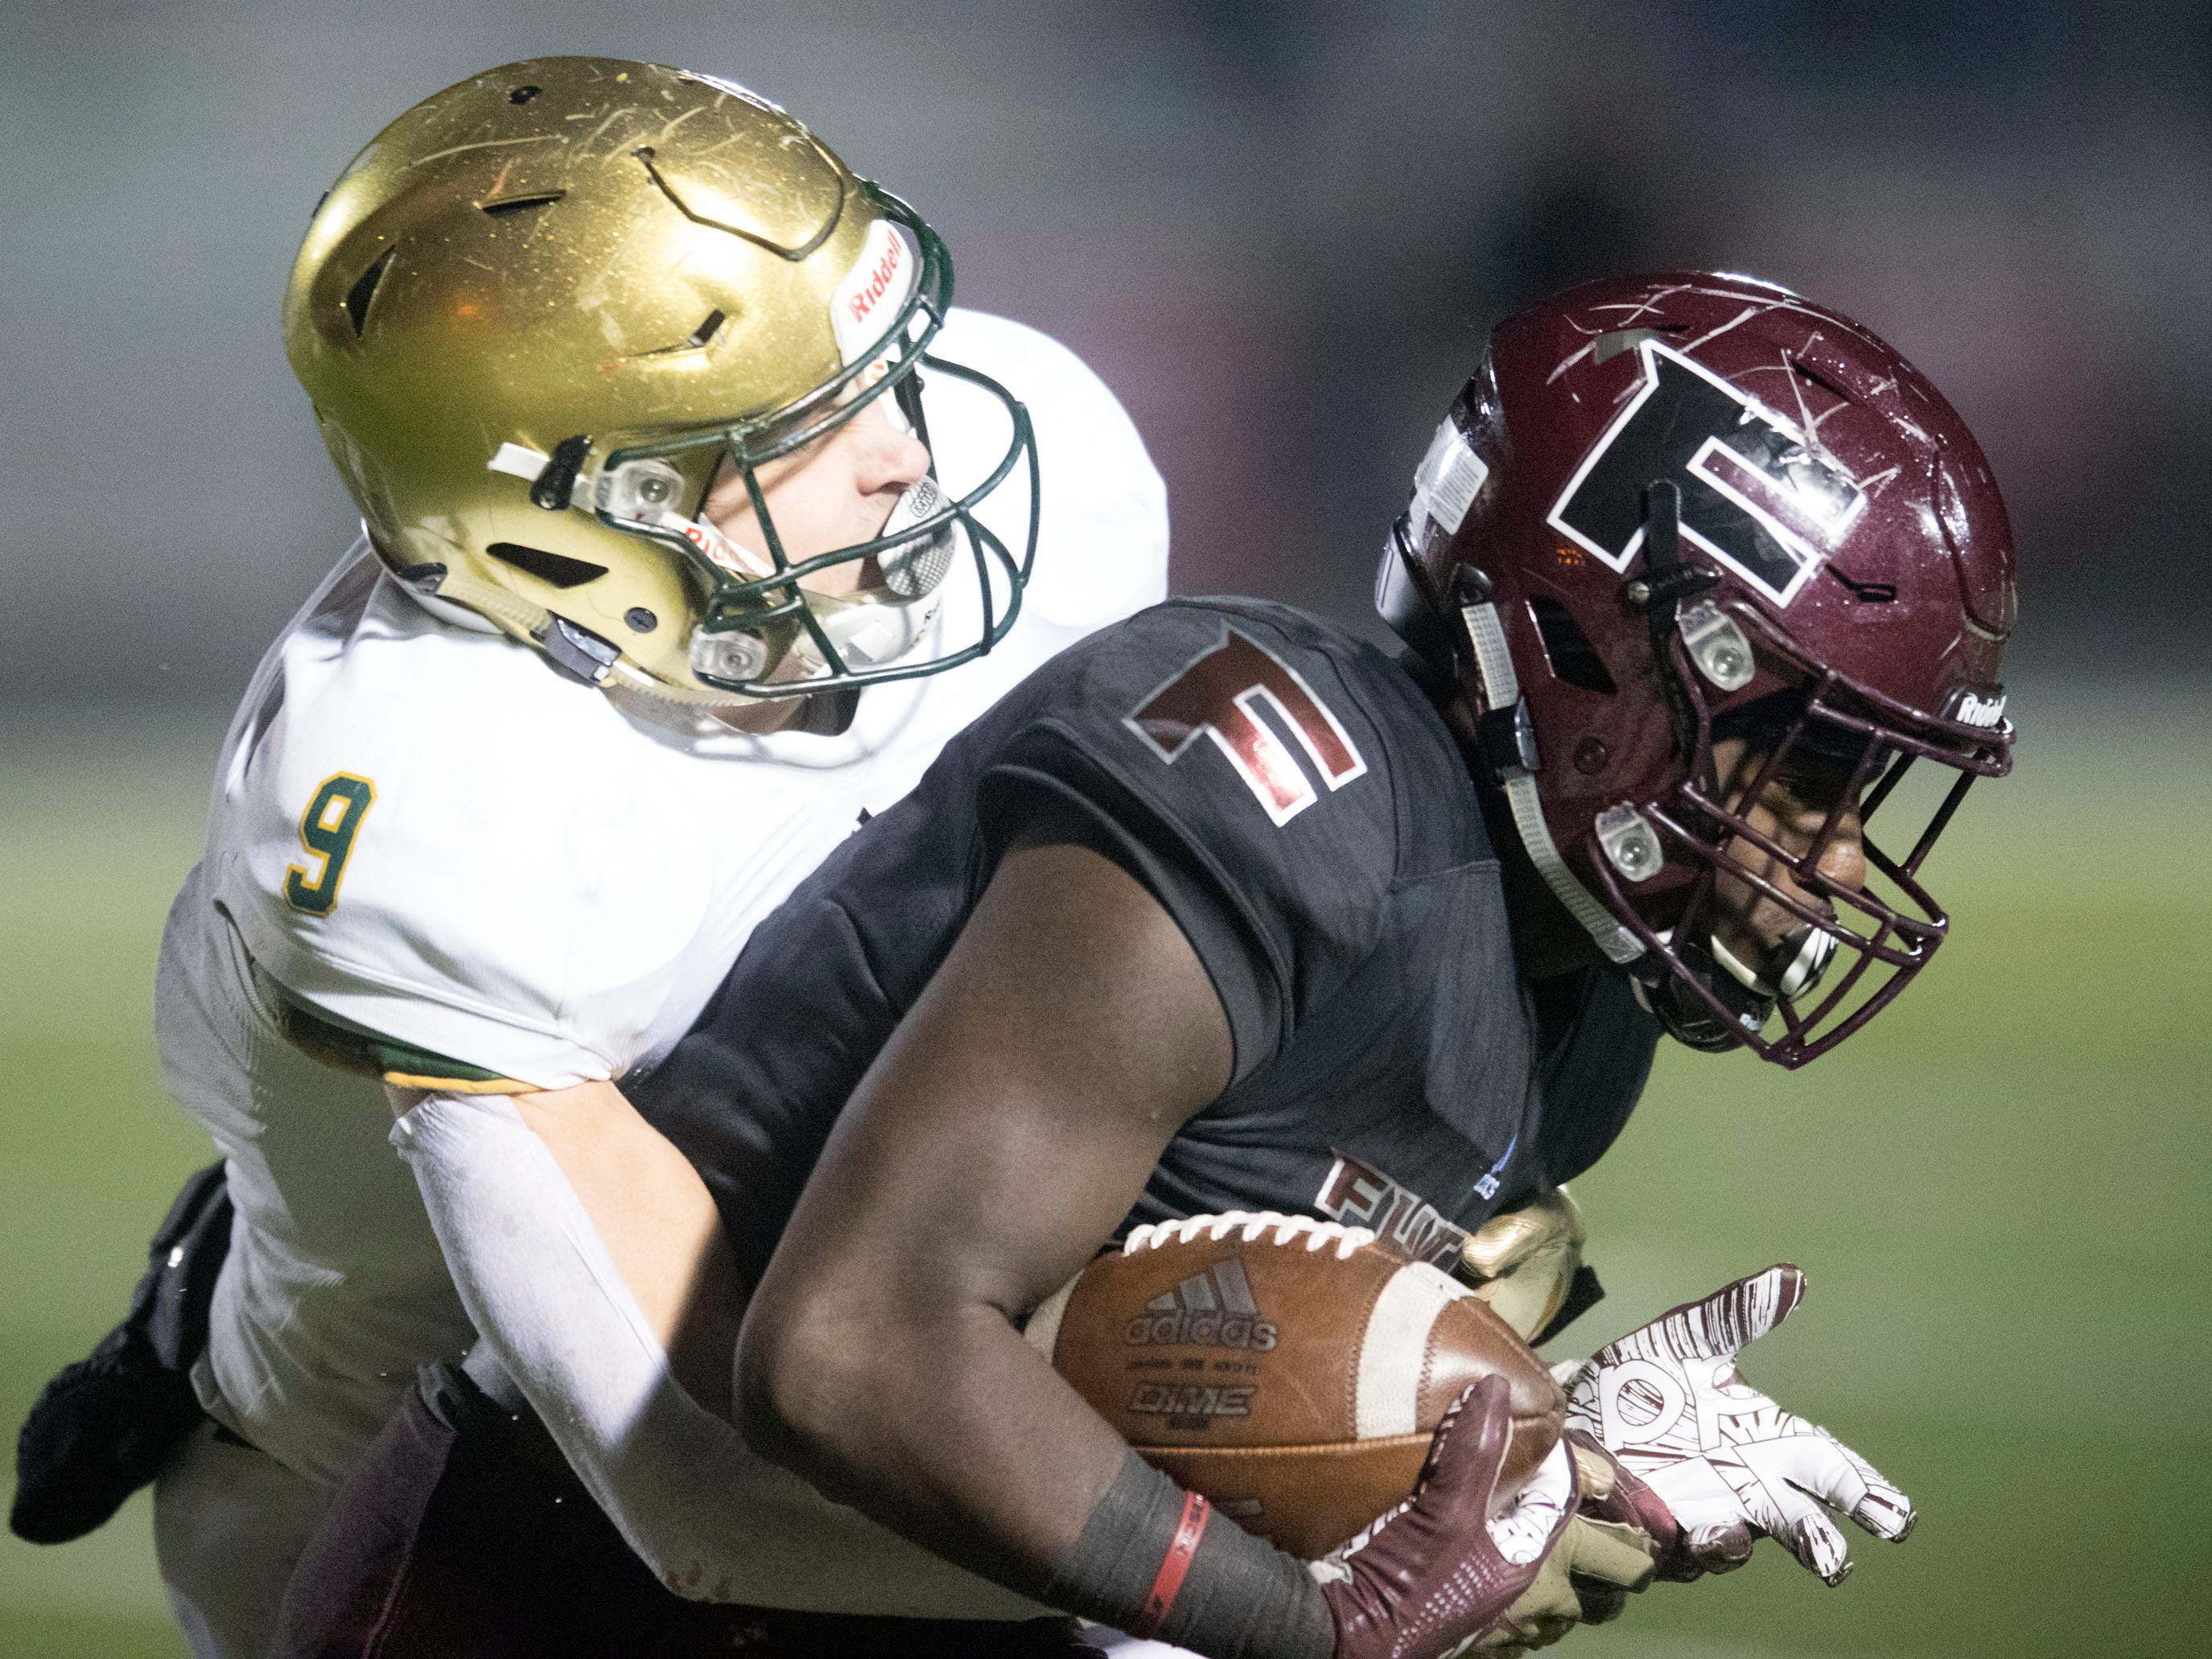 Fulton's JaShaun Fenderson (2) is tackled by Knoxville Catholic's Adam Jones (9). Knoxville Catholic beat Fulton, 28-25 in the second round of the Class 5A playoffs on Friday, November 9, 2018.